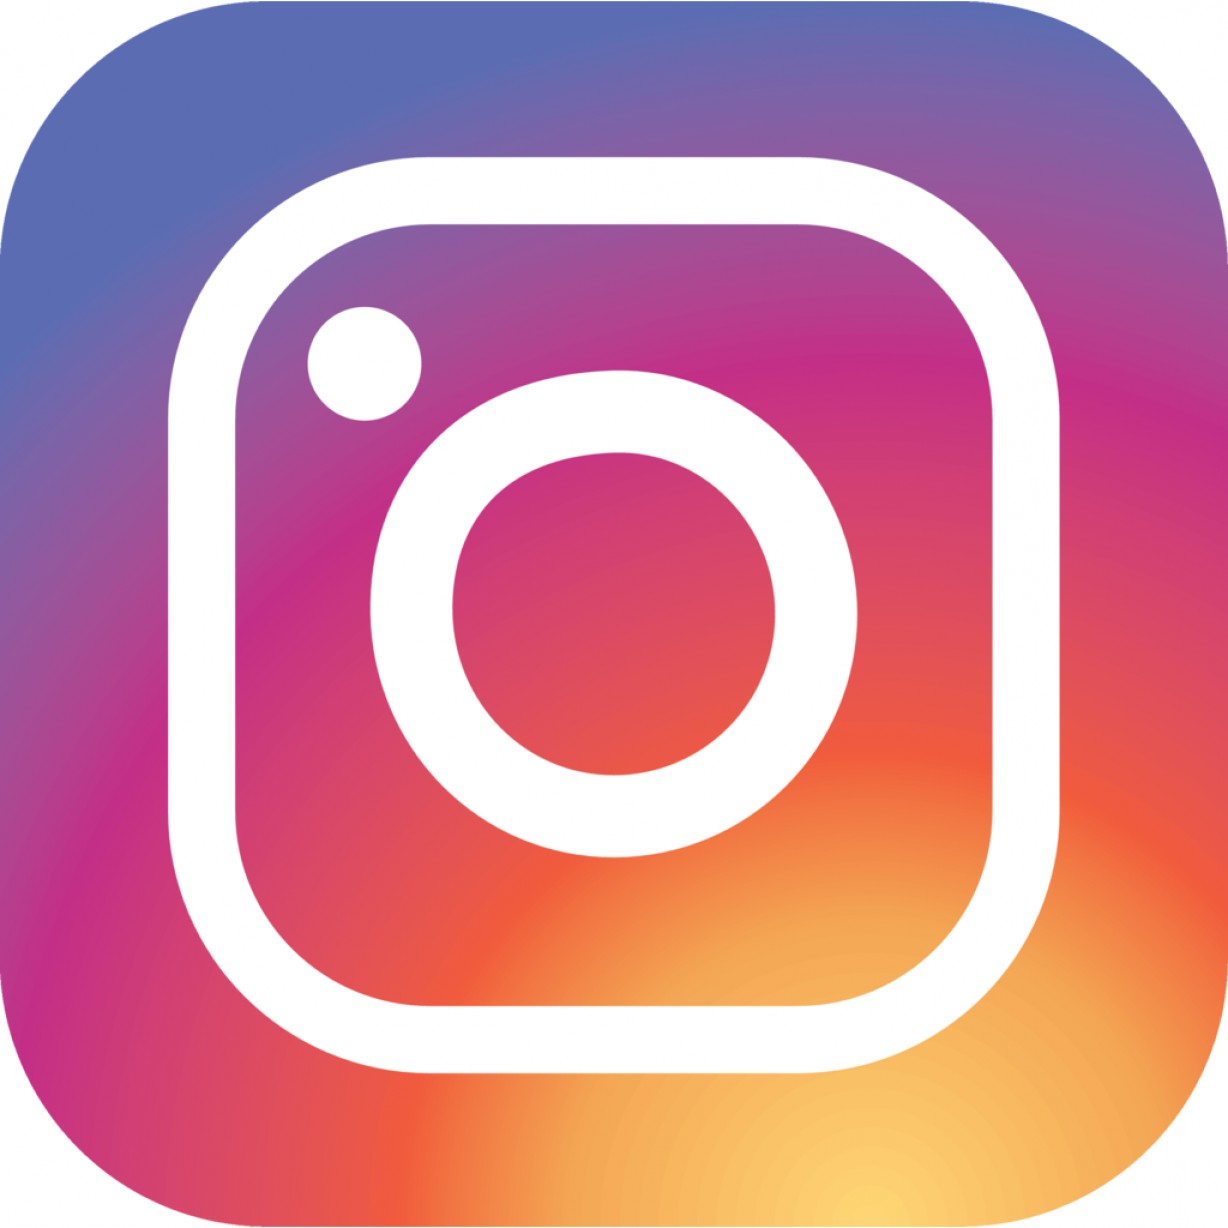 excellent-new-instagram-logo-clipart-image